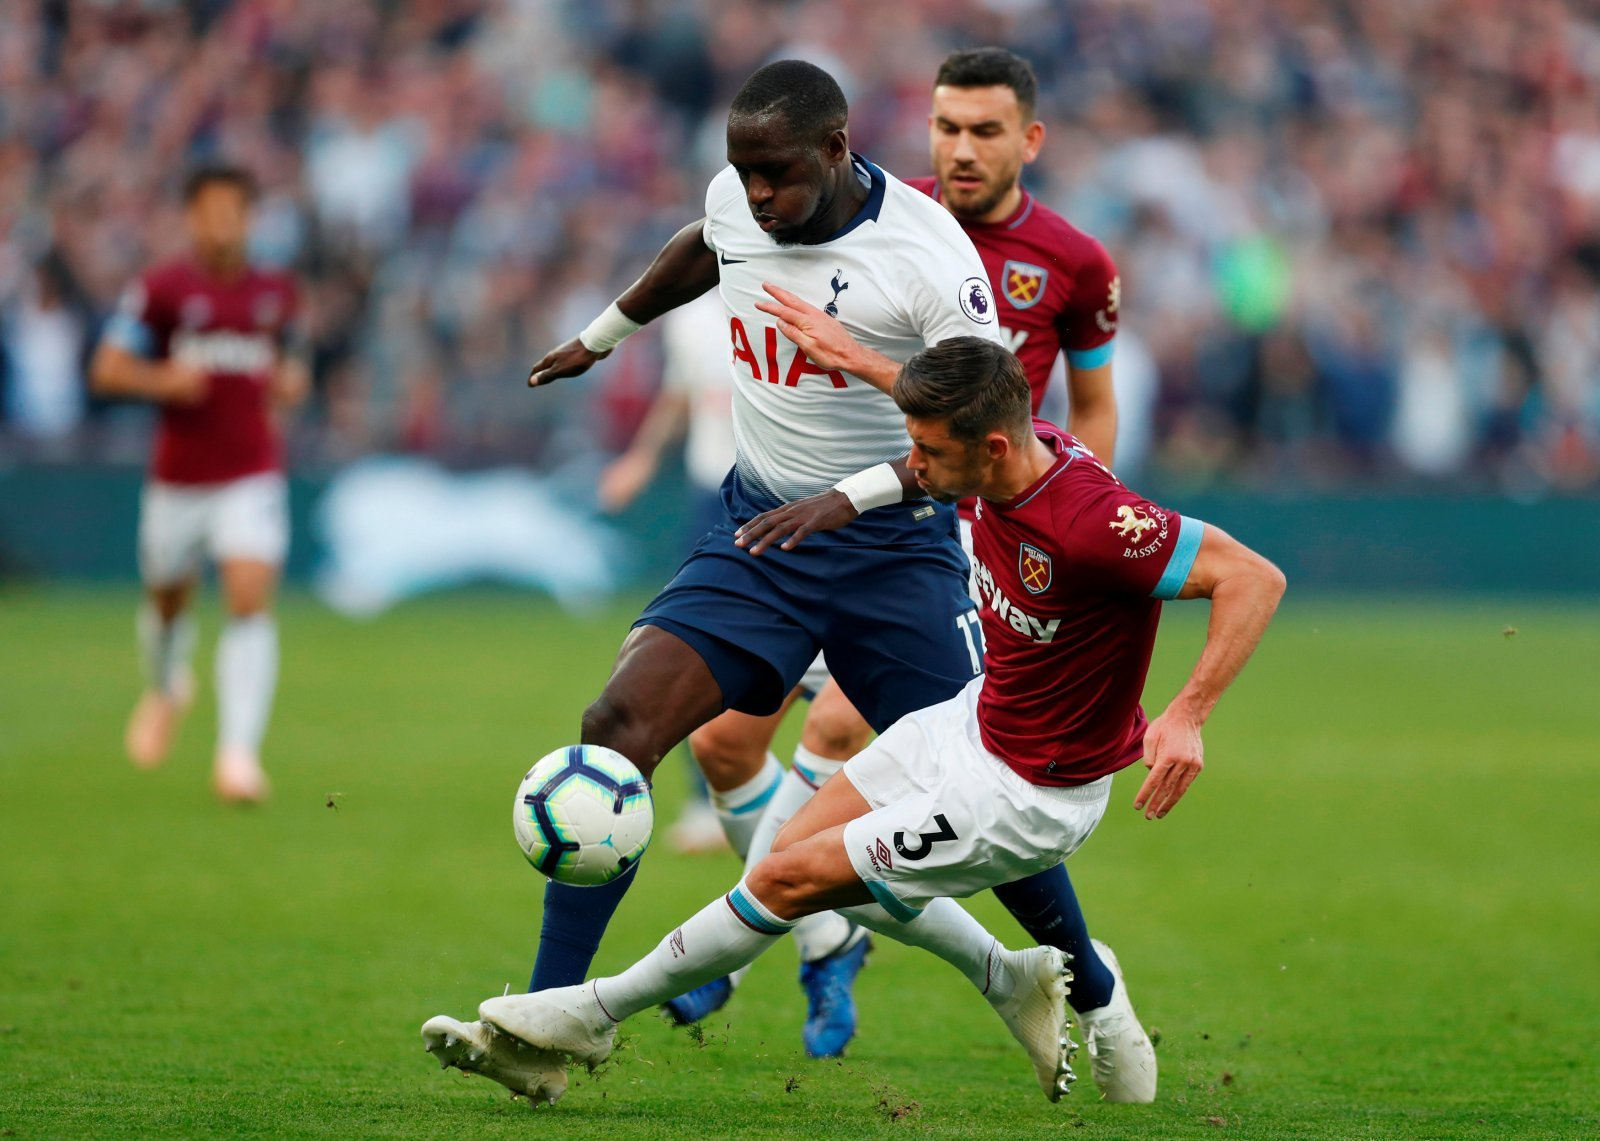 Tottenham fans take to Twitter in horror after hearing of Sissoko blow